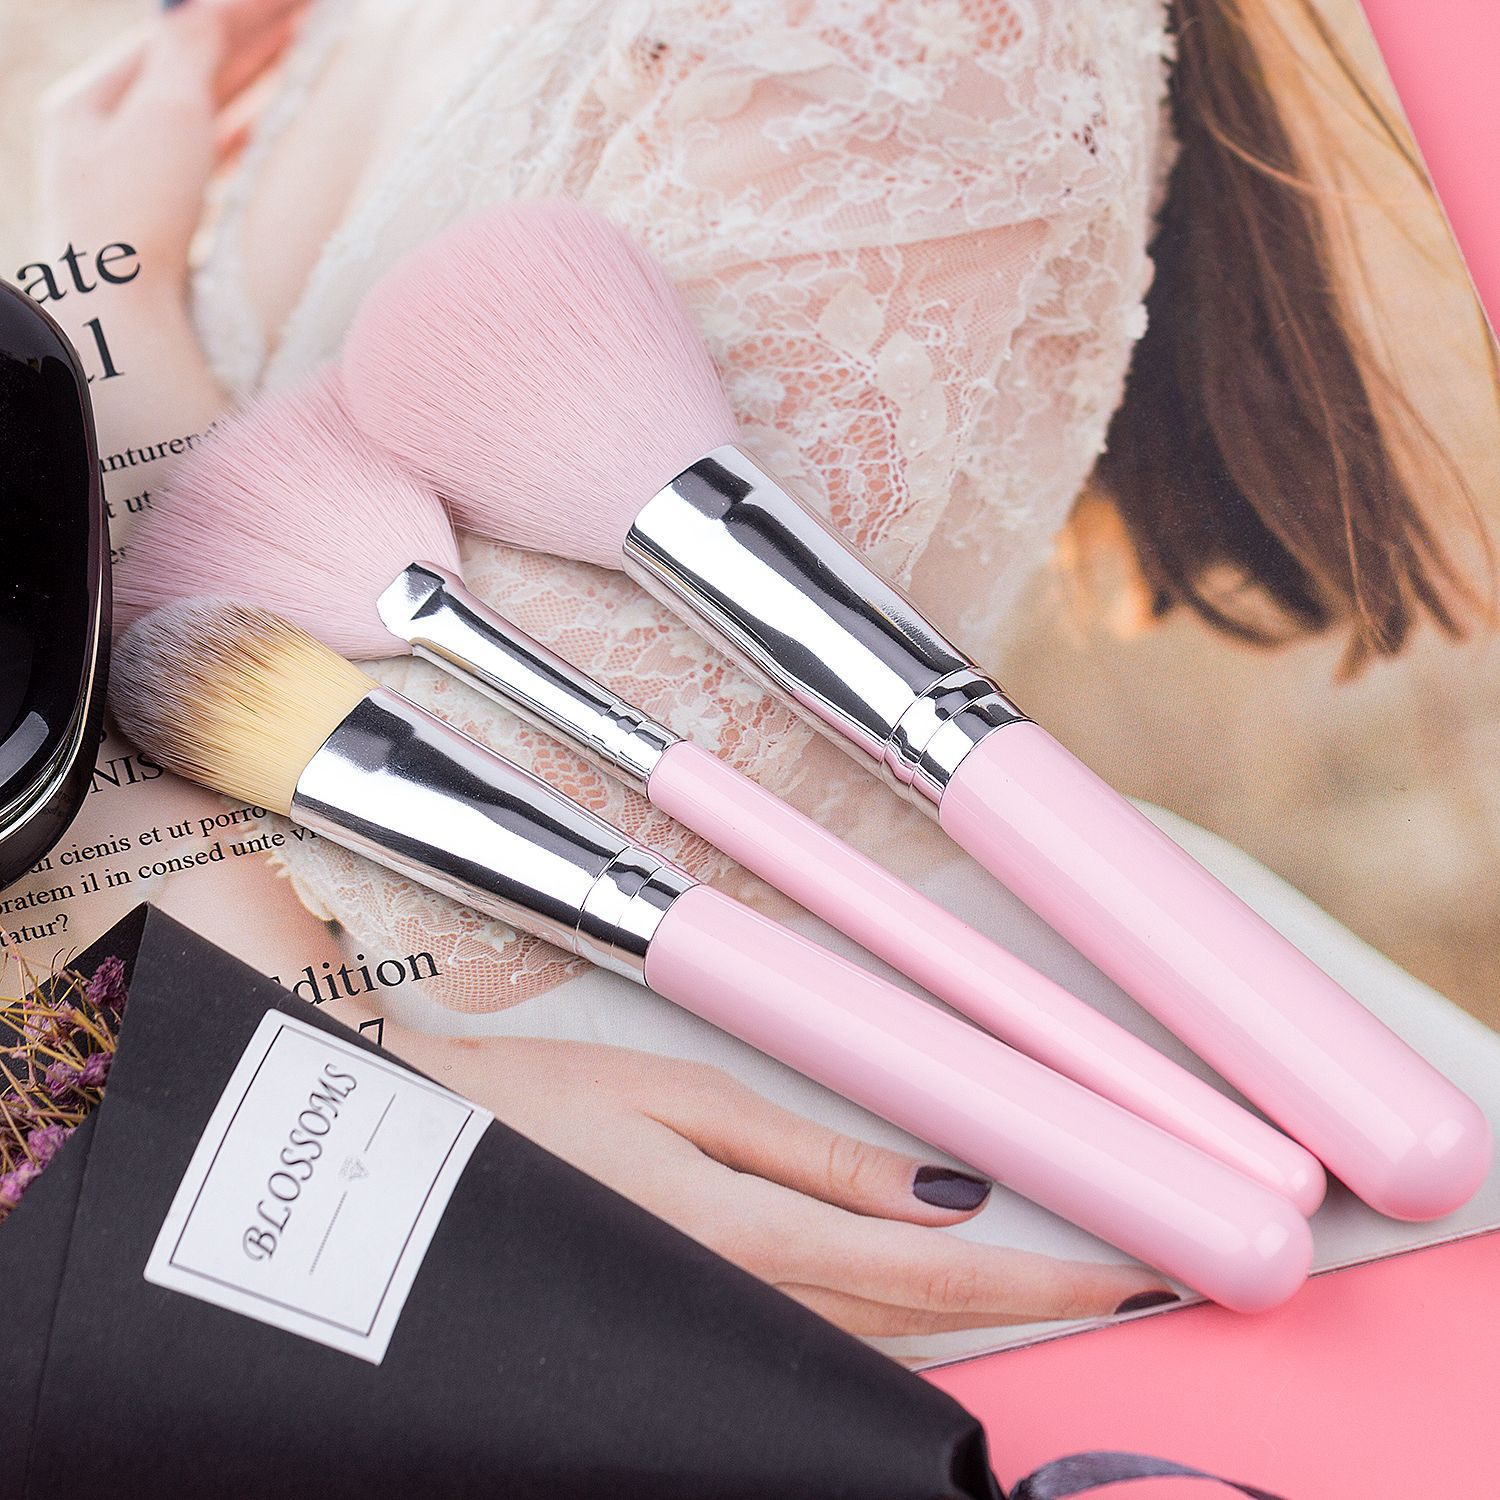 Makeup Brush 8 Piece Set Beginner Makeup Tools Complete Eye Brush Beauty Makeup Set